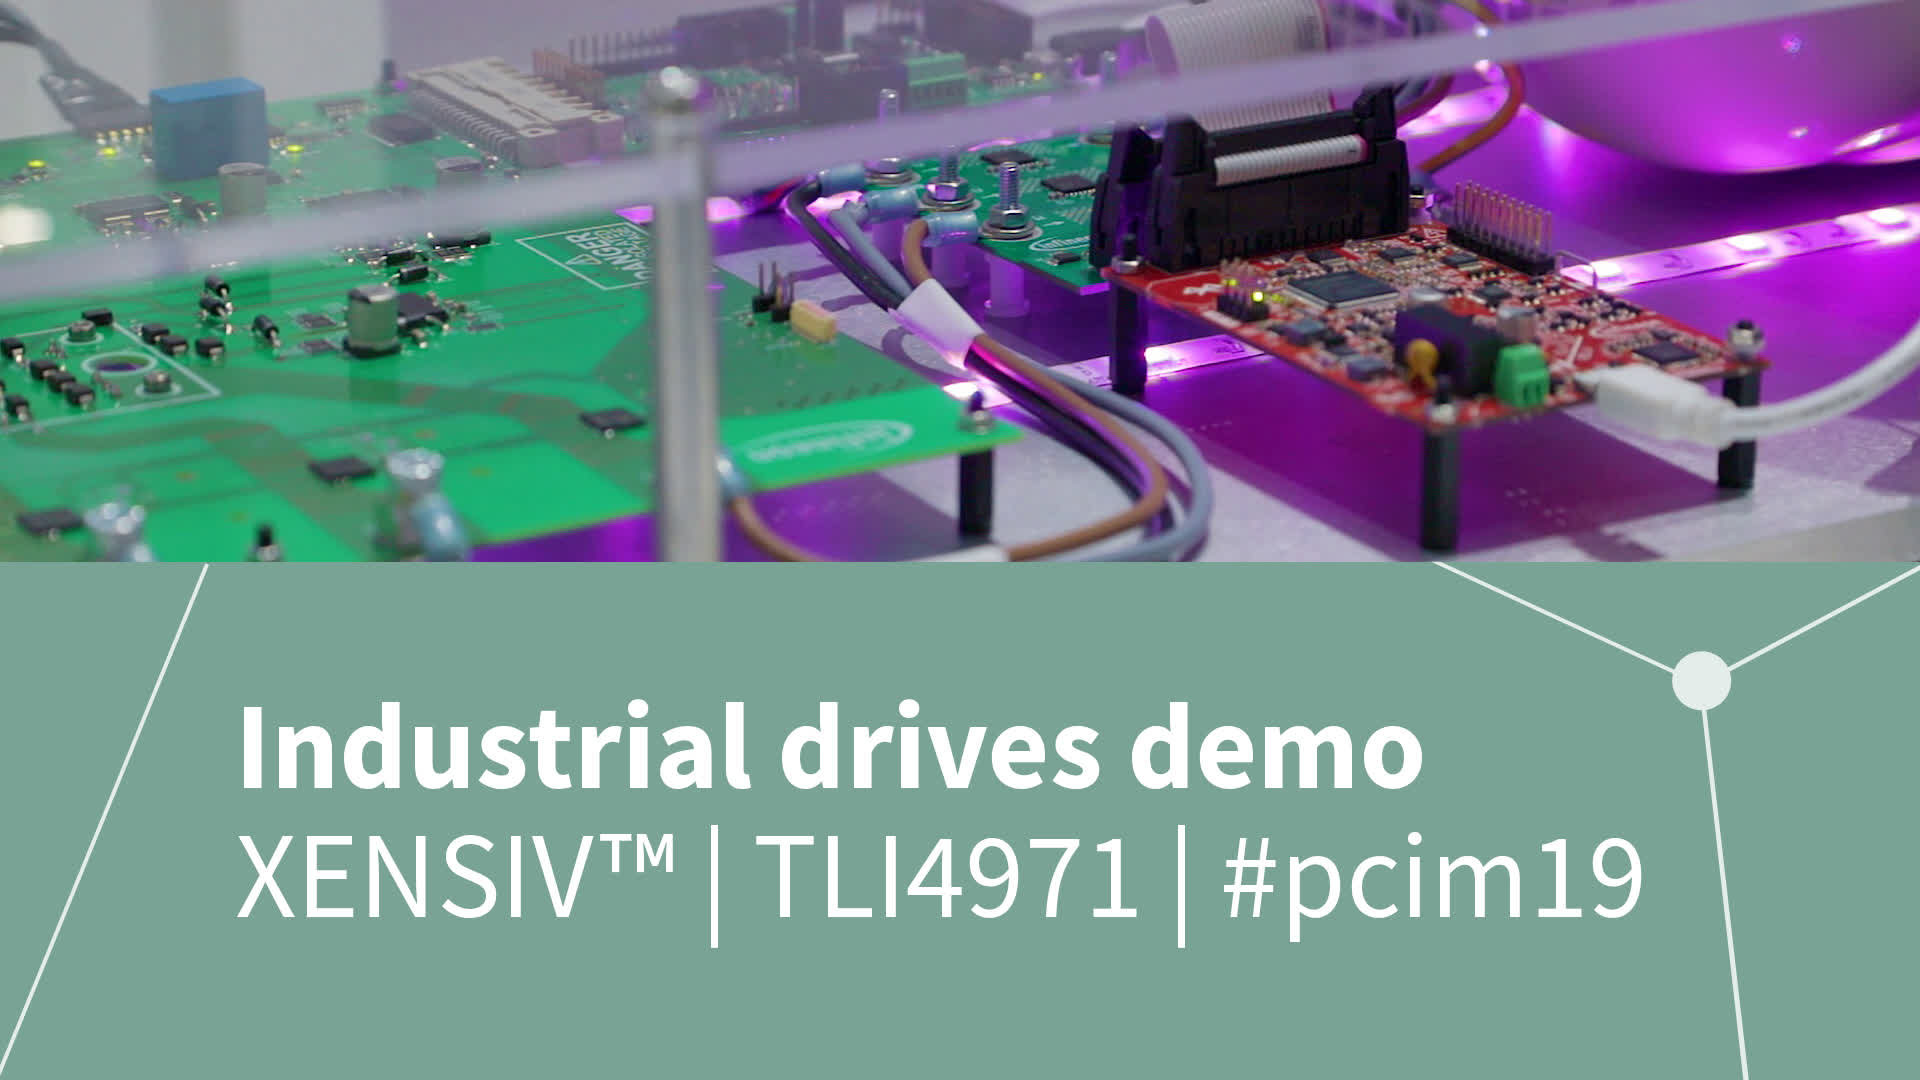 Industrial drives demonstrator using XENSIV™ magnetic current sensor TLI4971 from Infineon